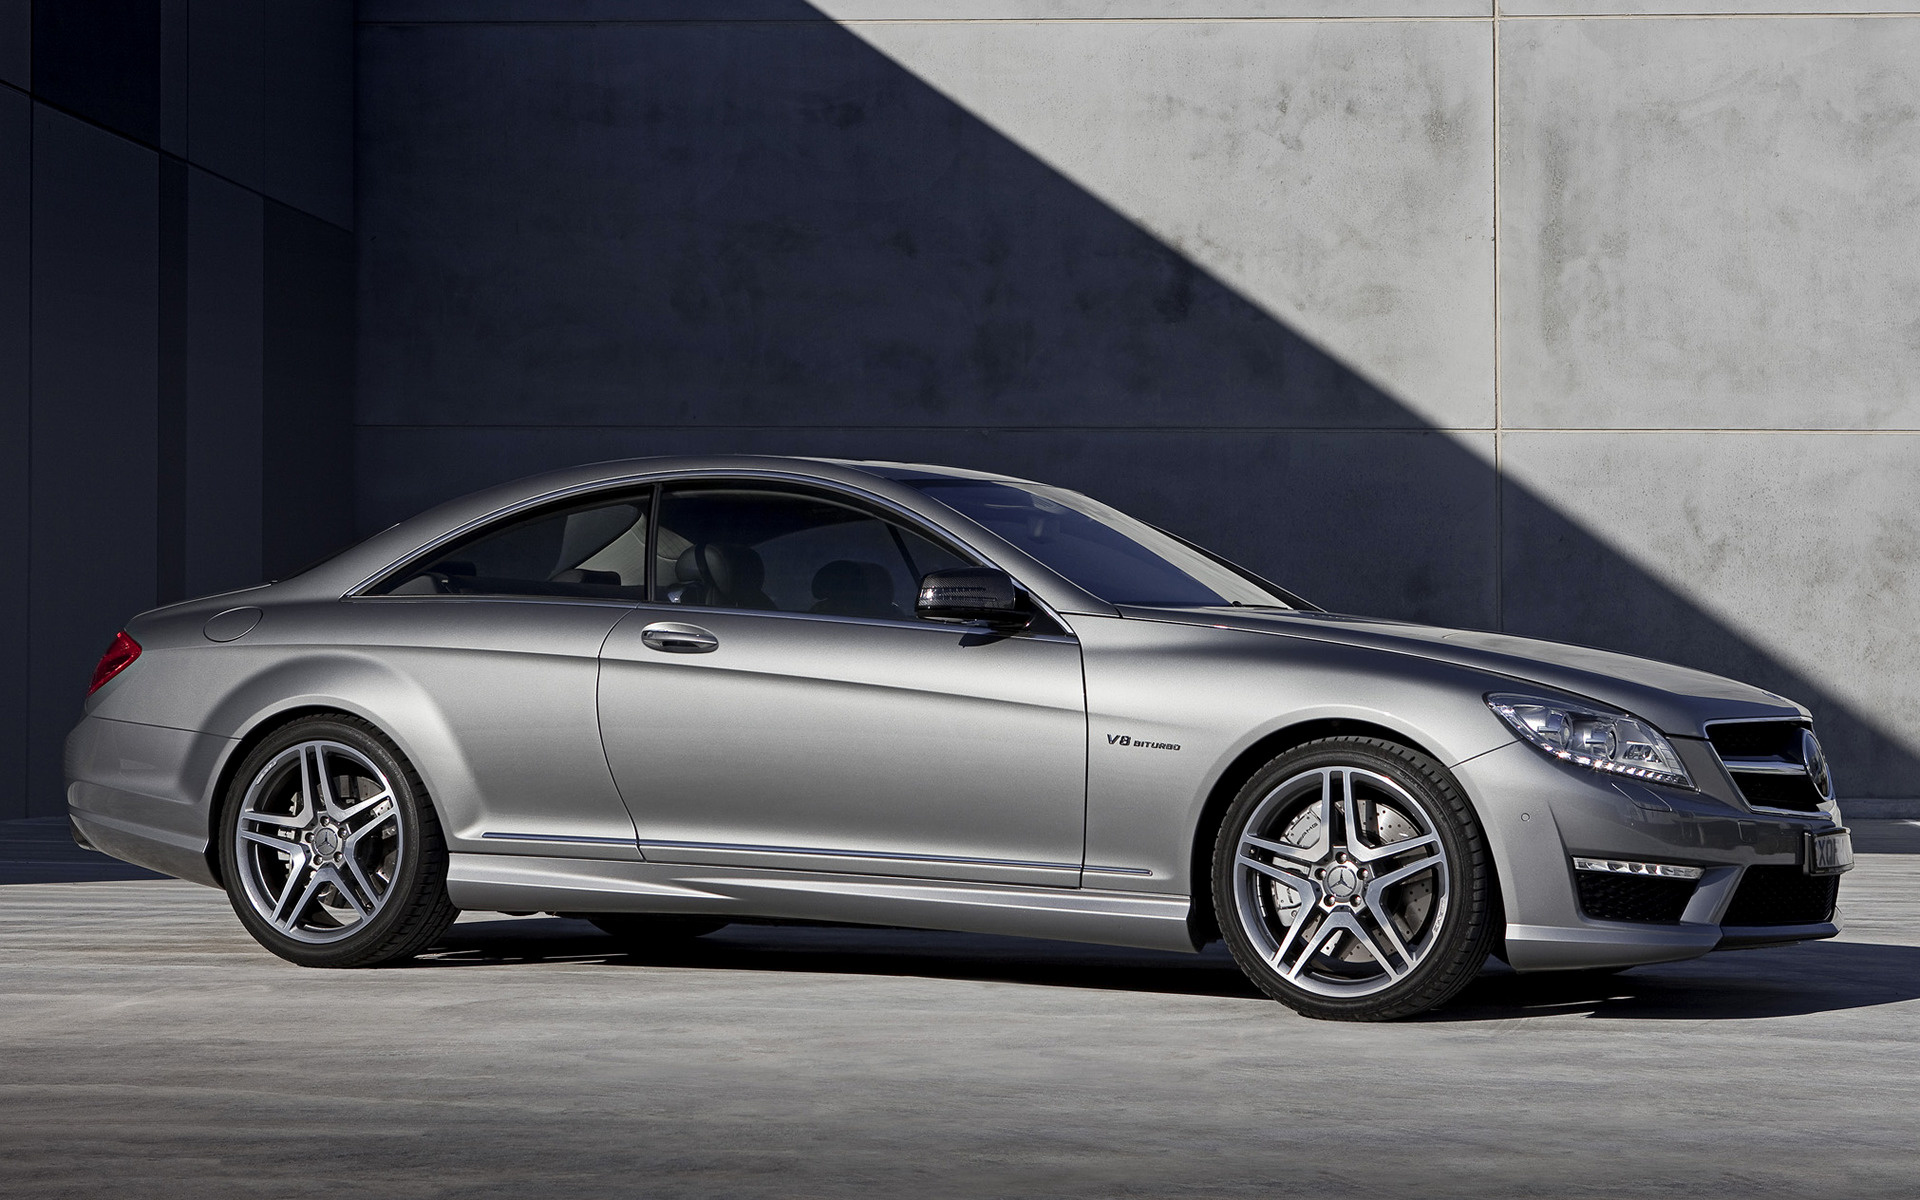 mercedes cl63 amg hd - photo #13